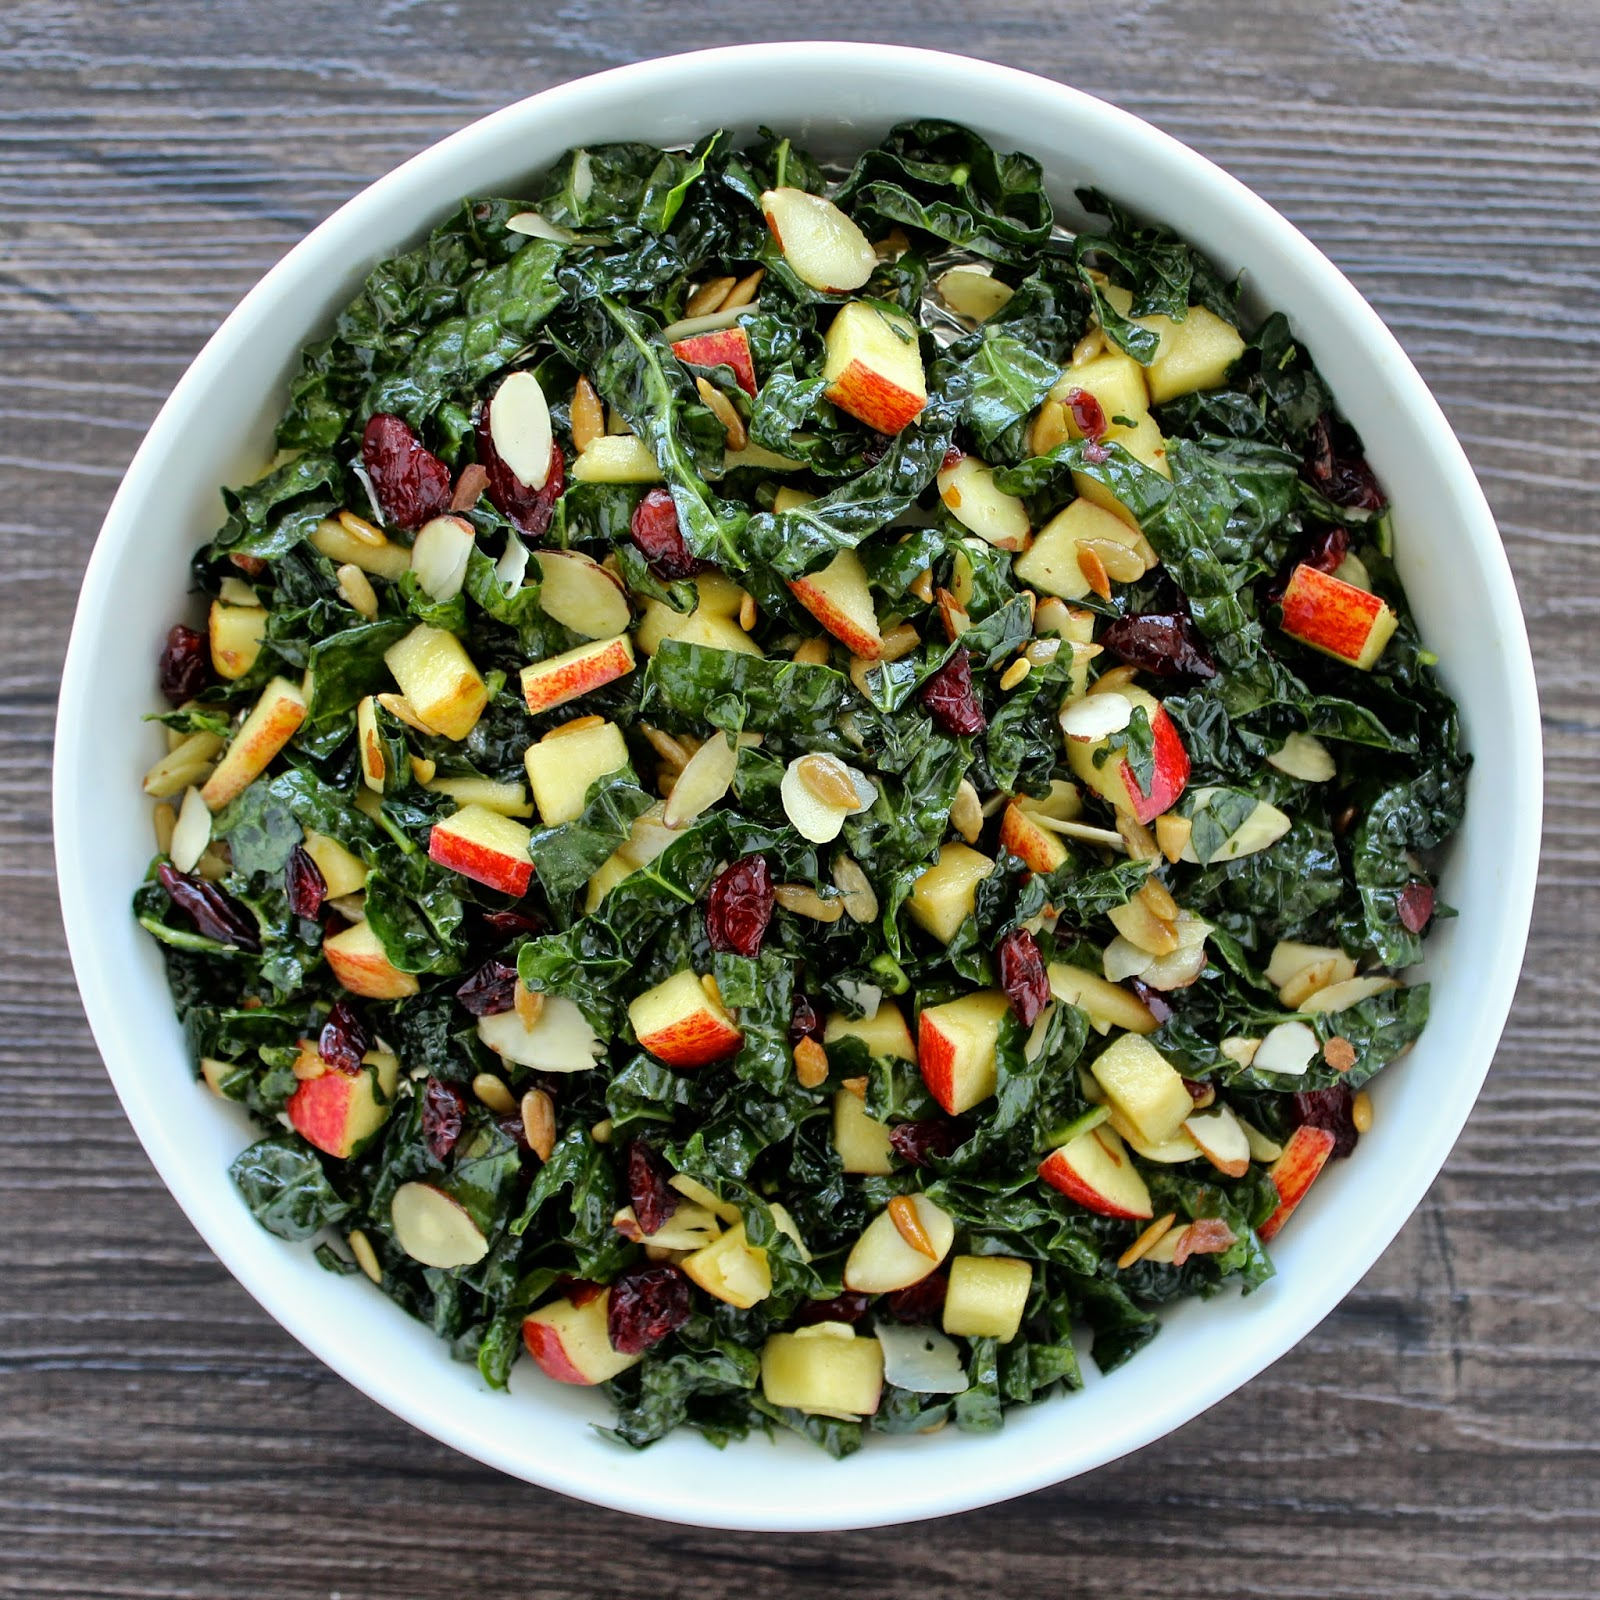 Healthy Vegetarian Recipe Ideas from The Foodie Physician Tuscan kale and apple salad